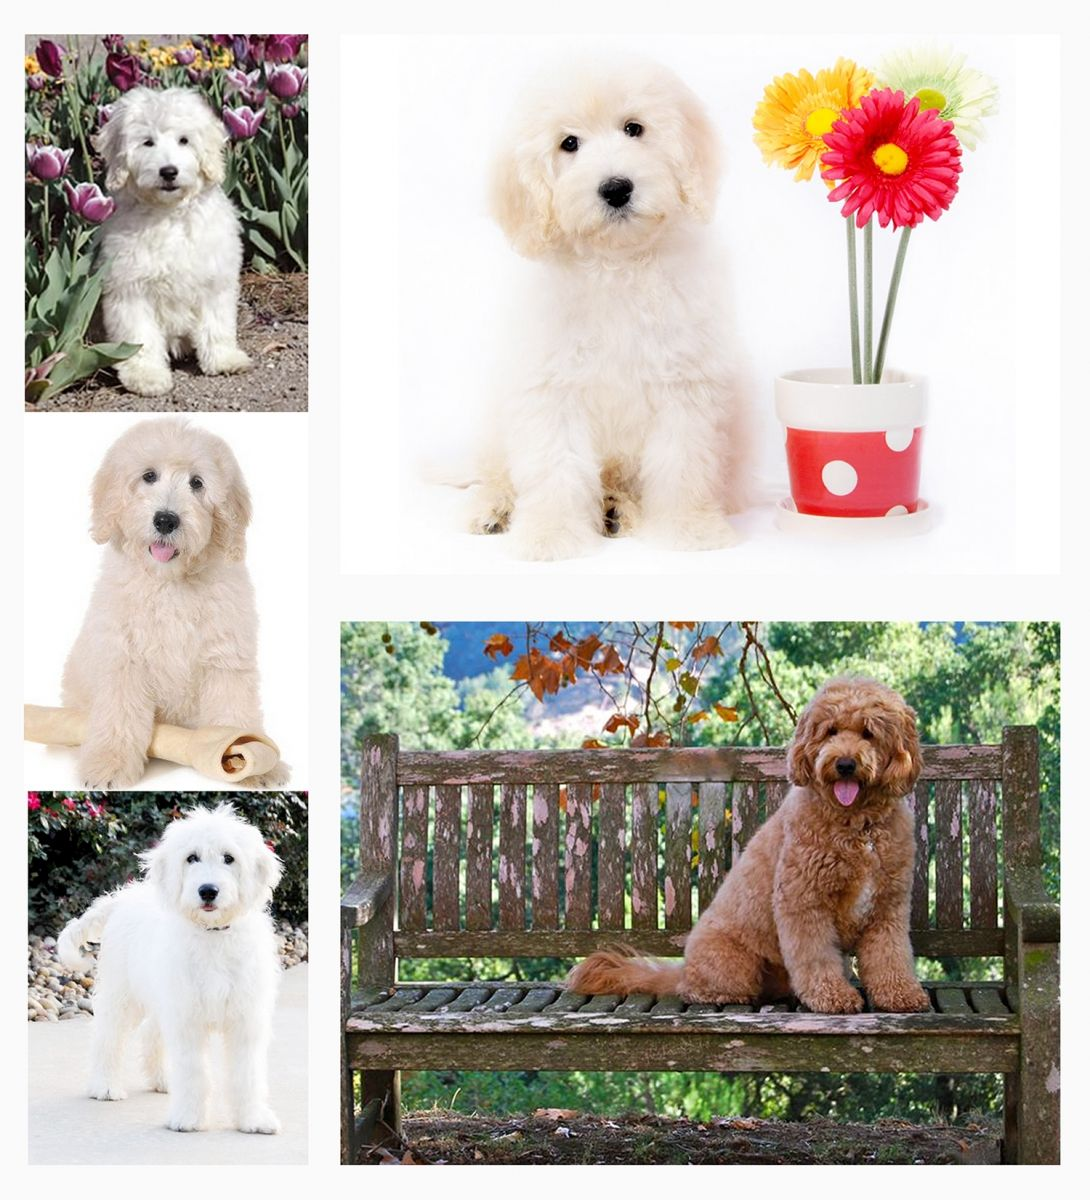 These are all F1 Teddy Bear Goldendoodles from Smeraglia